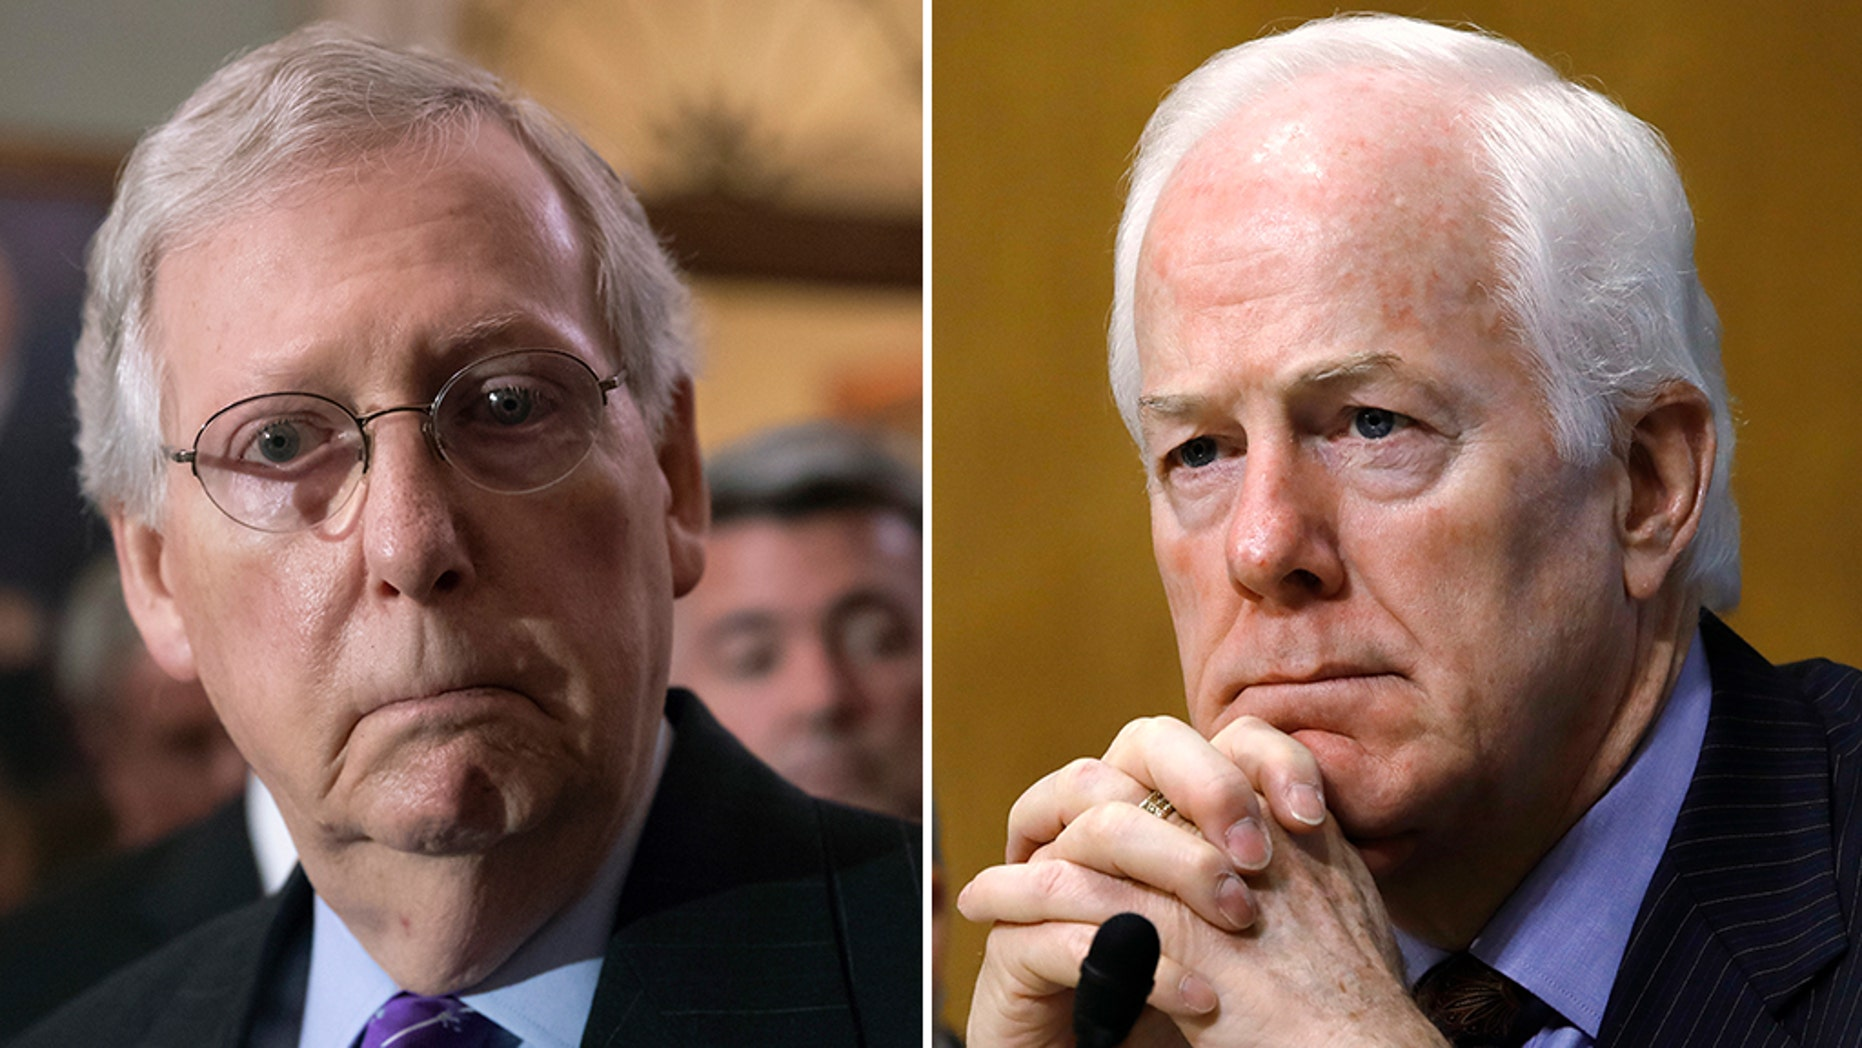 Sen. John Cornyn, right, said the controversy would not reflect well on Congress, while Majority Leader Mitch McConnell said the effect on the midterms would be minimal.